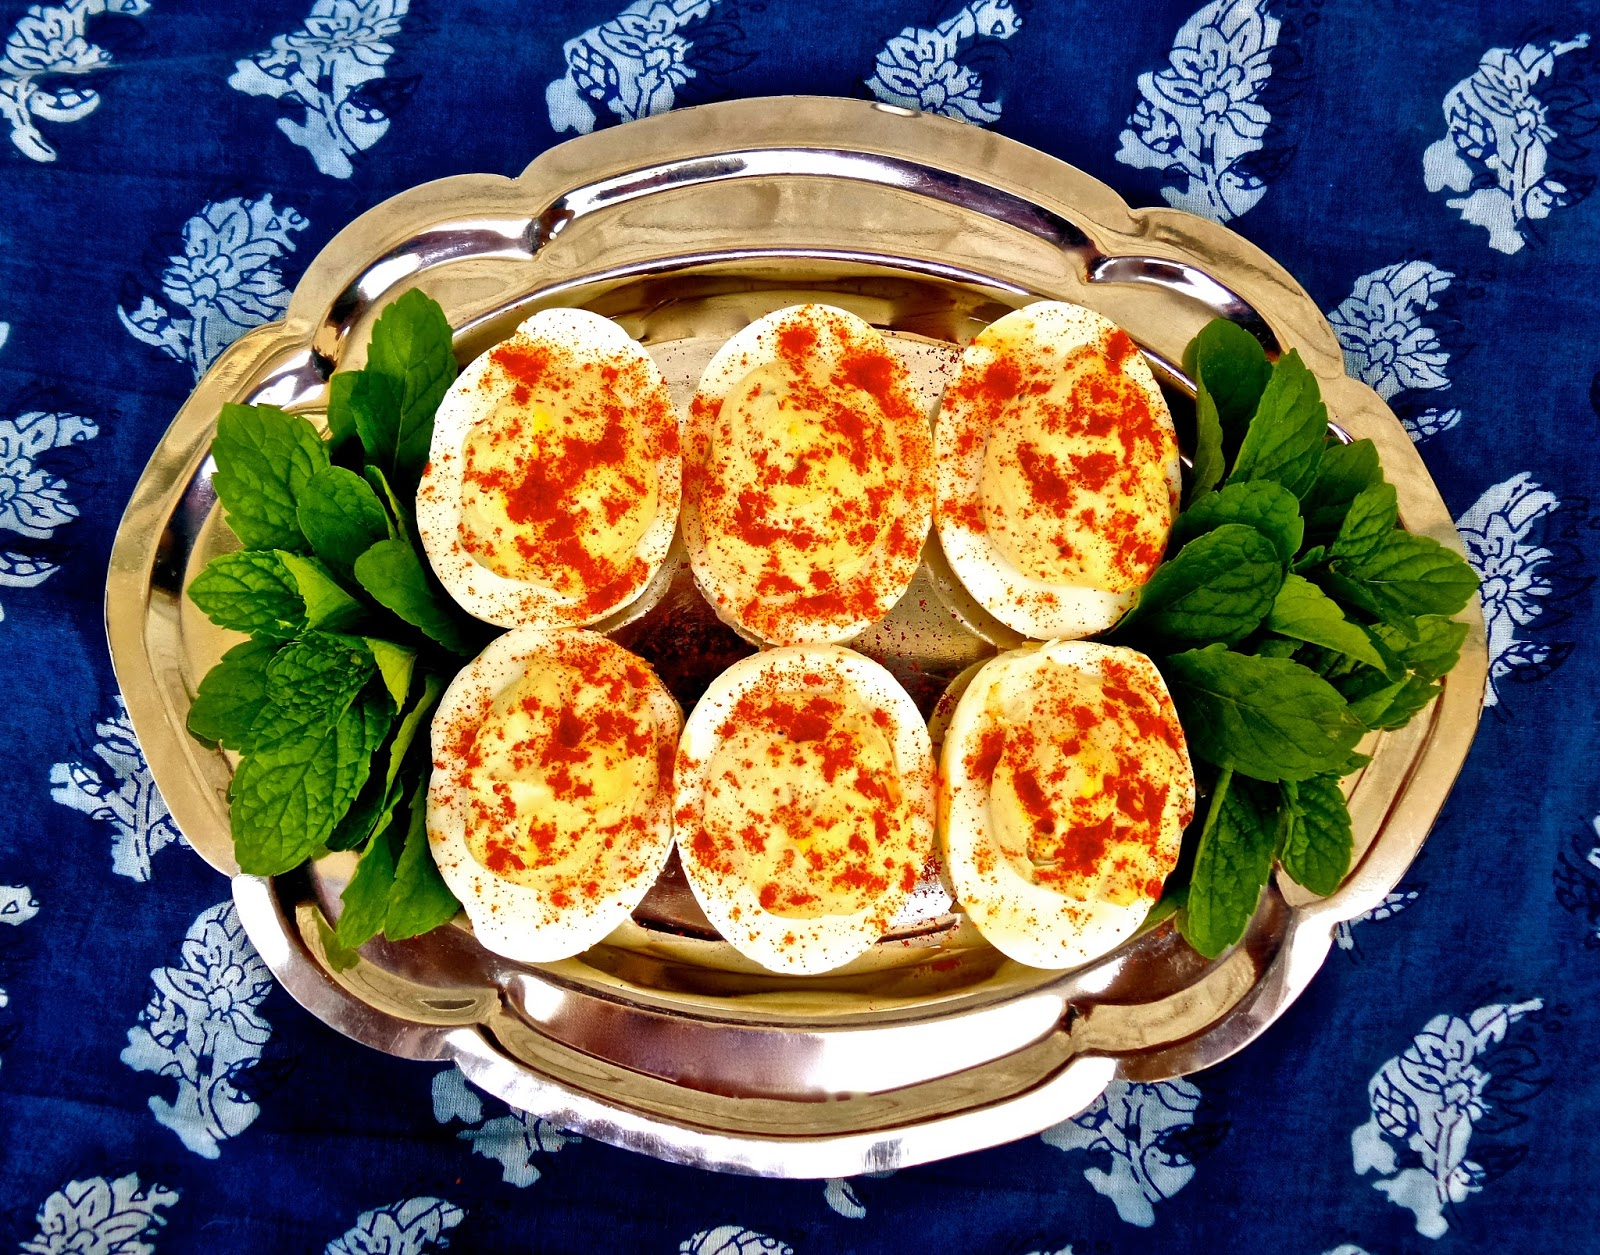 Garam Masala Deviled Eggs, garam masala, eggs, easter, recipe, easy, indian, deviled, spicy, worcestershire, hard boiled, hard cooked, vegetarian,